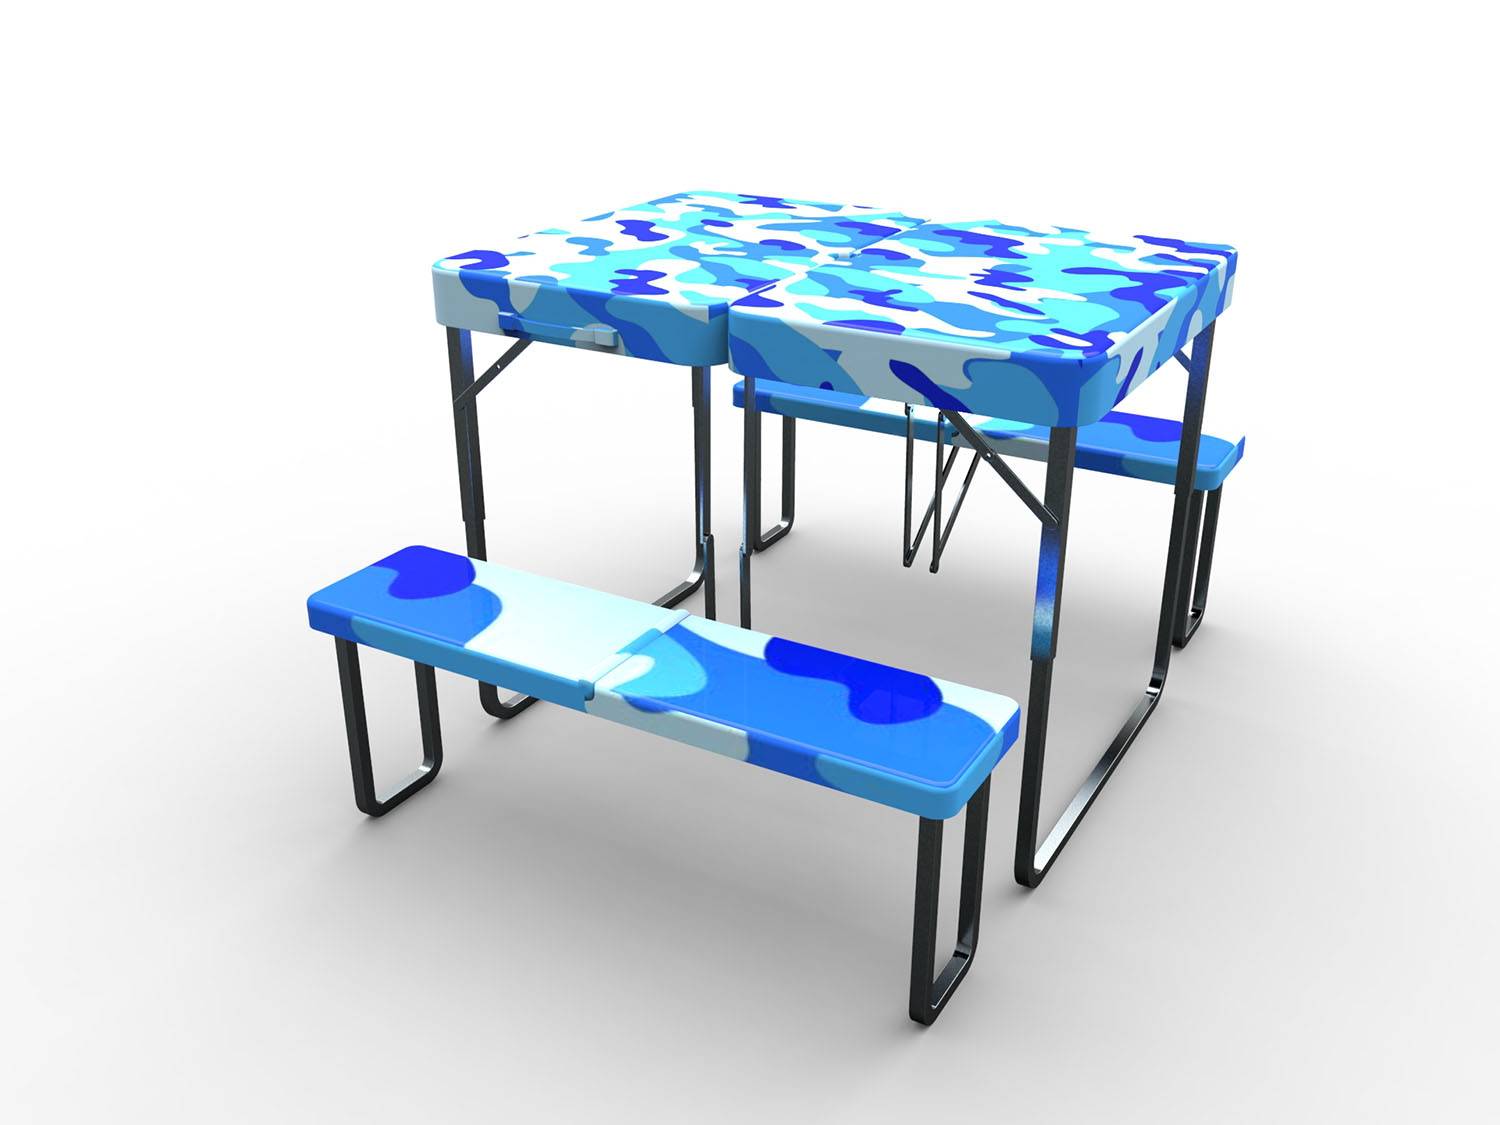 Portable Outdoor Folding Table And Chair Industrial Design